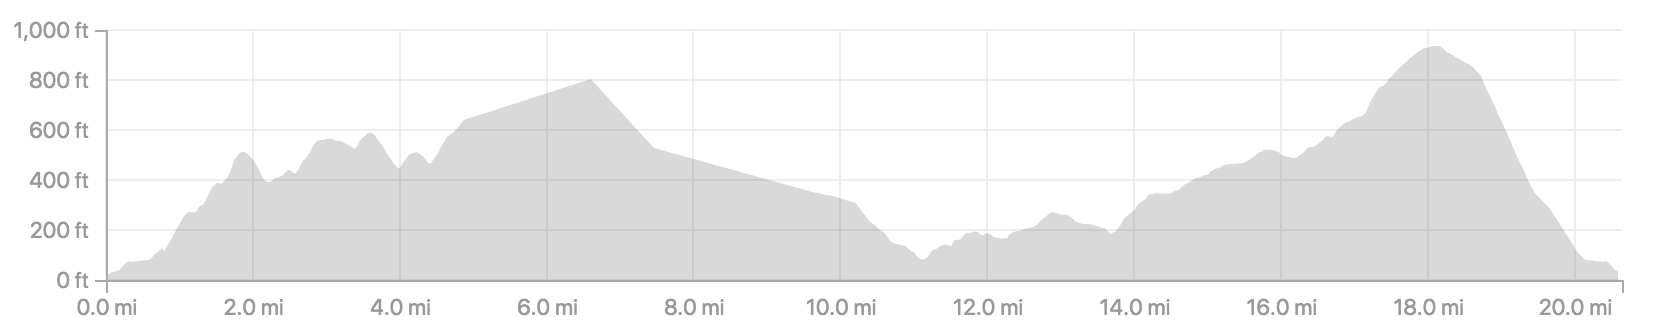 elevation gain from lamlash to kilmory and back